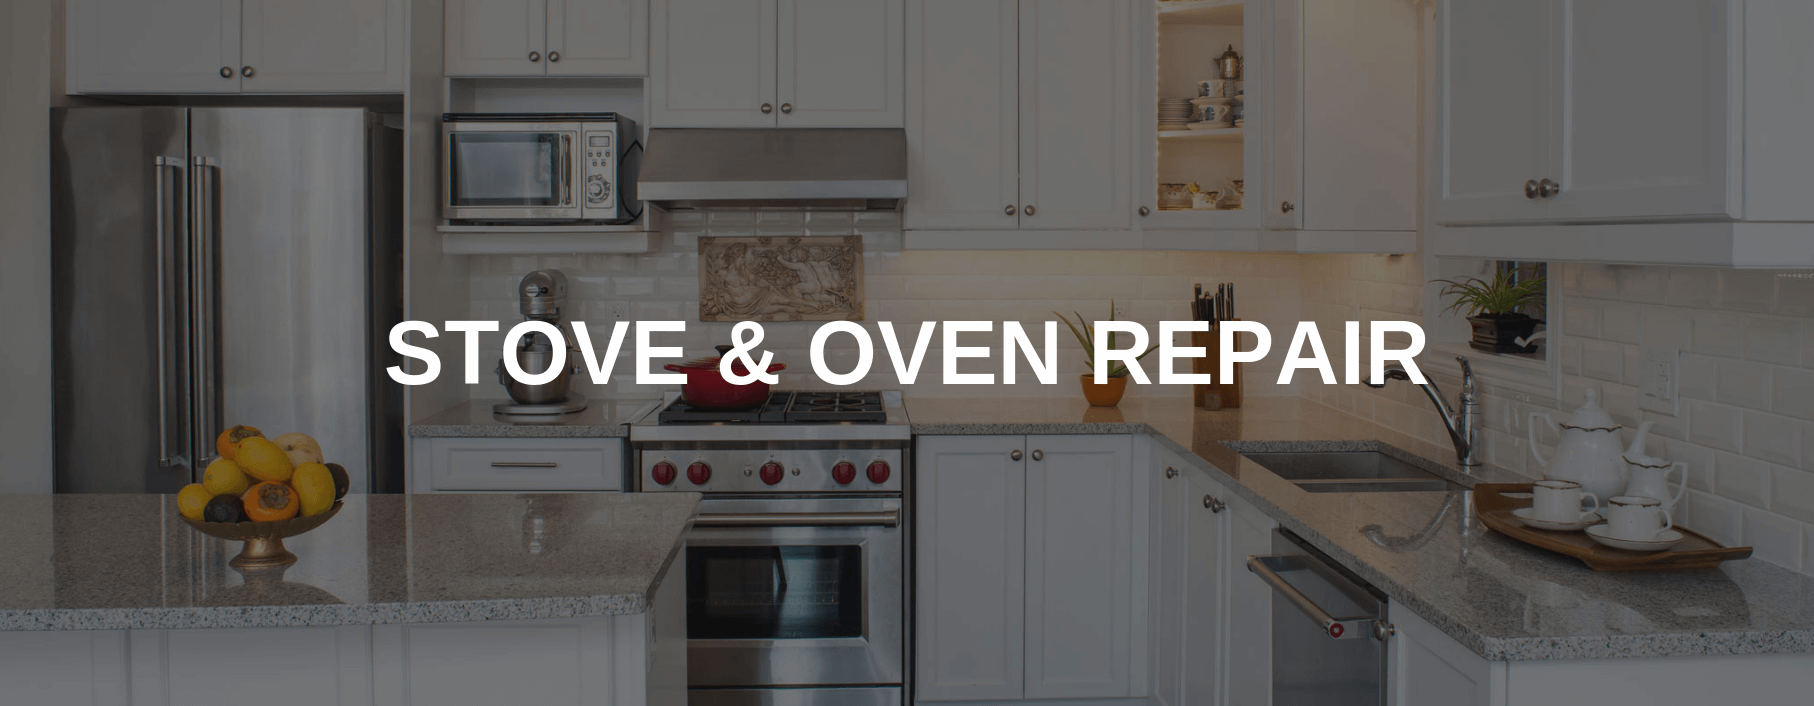 stove repair seattle